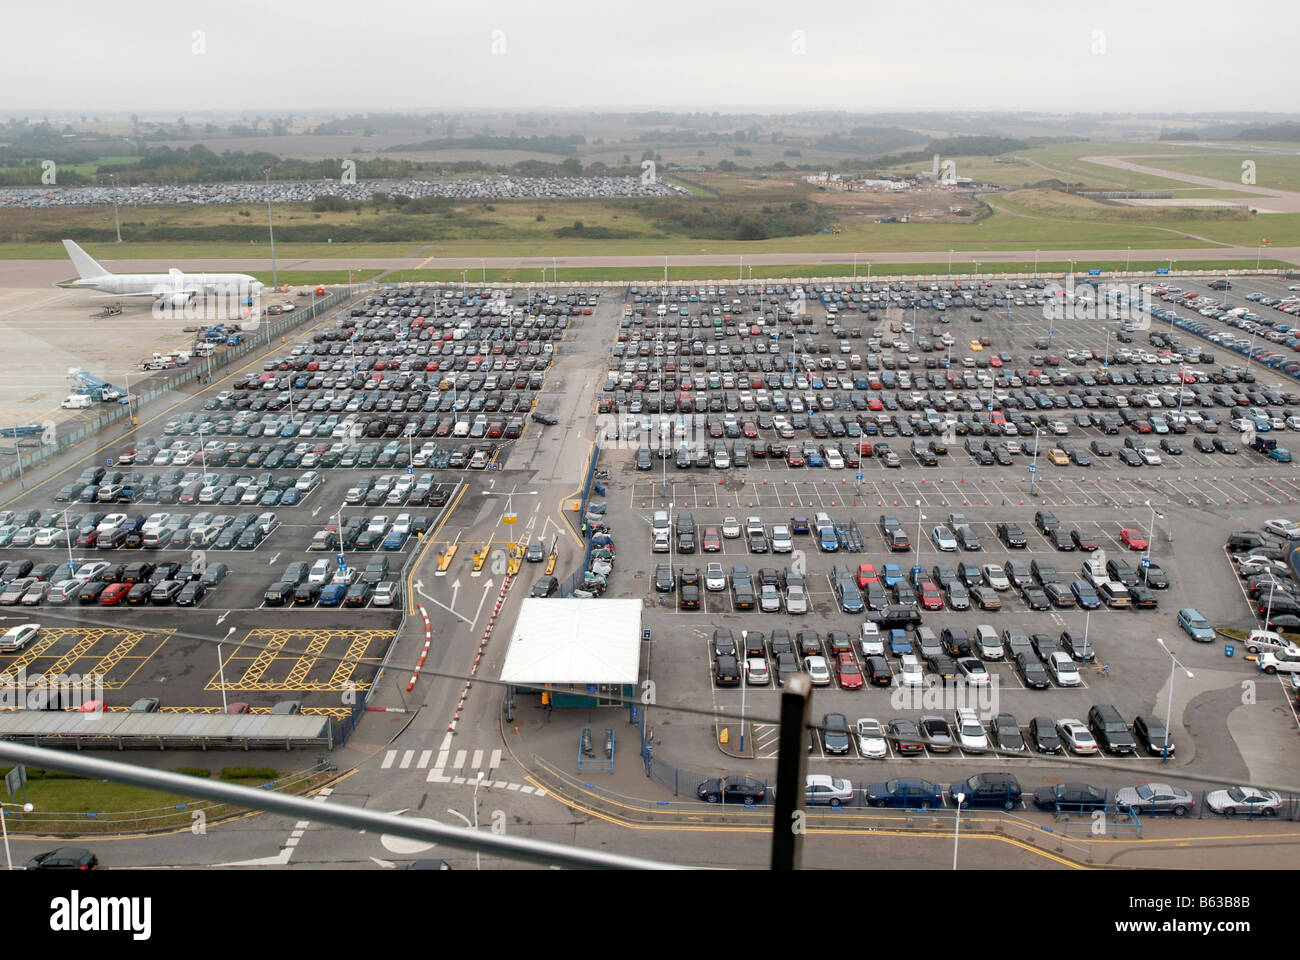 Luton Mid Term Parking >> Short Term Car Park At Luton Airport Stock Photo 20973019